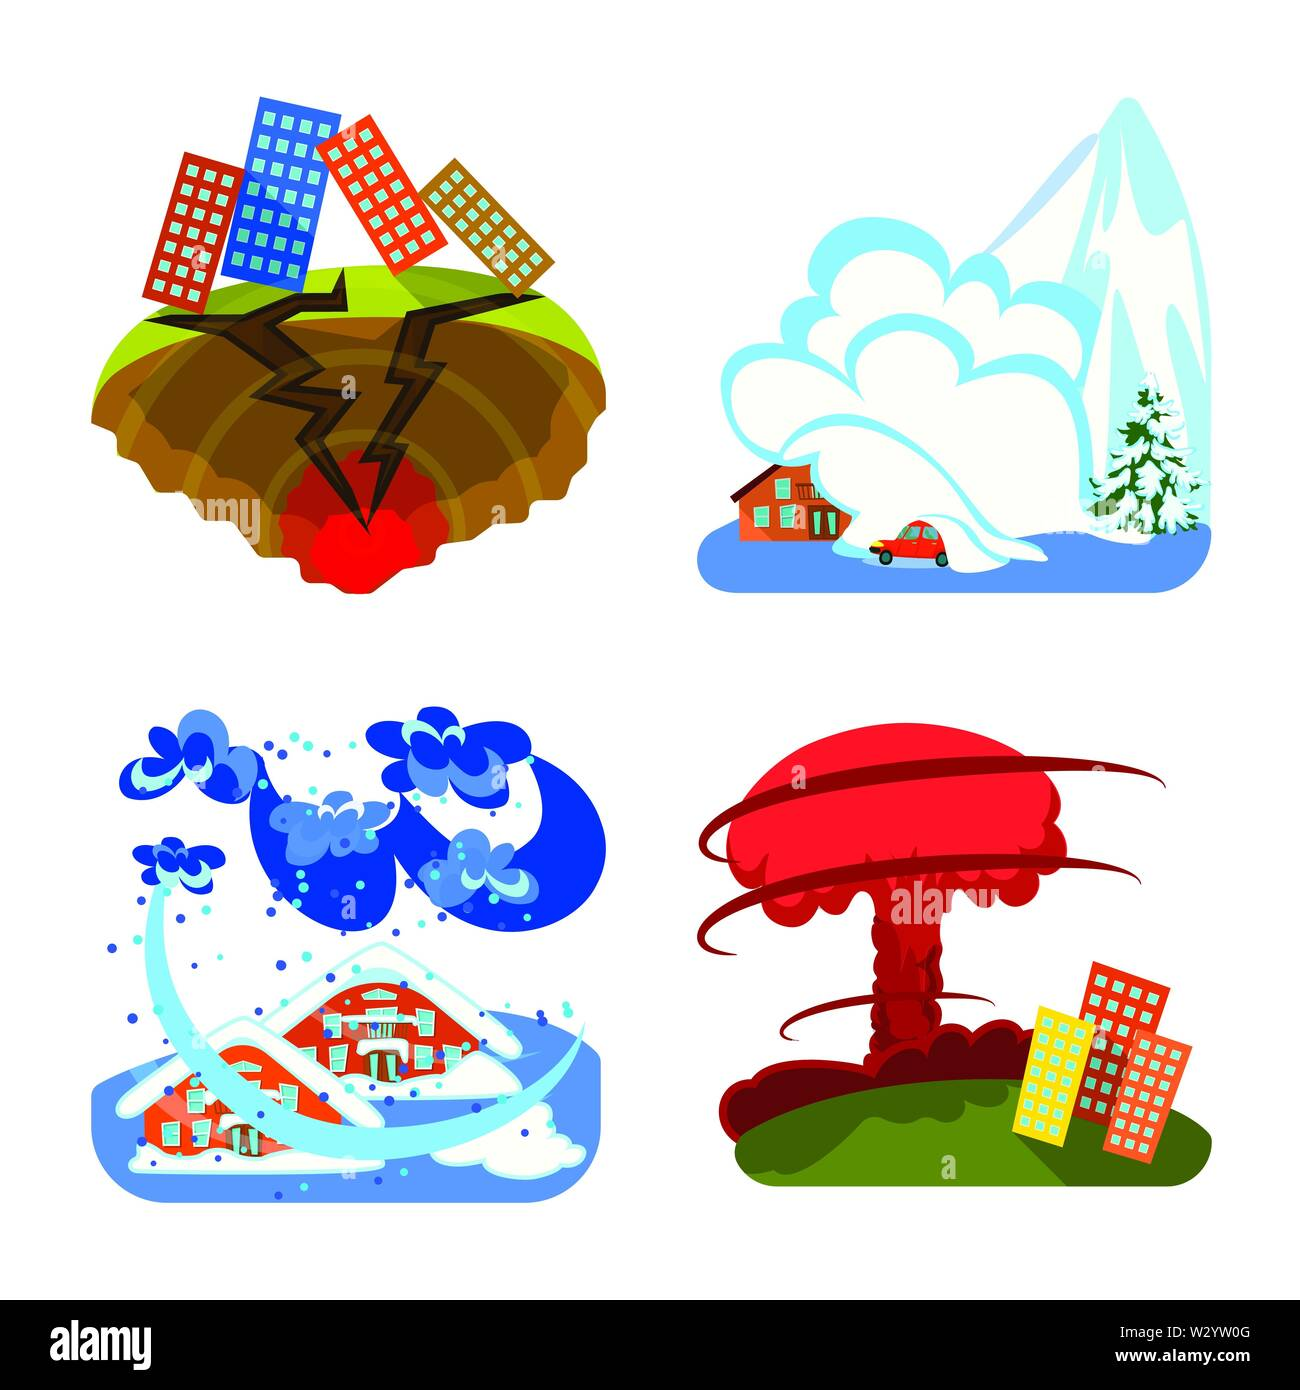 Vector design of cataclysm and disaster logo. Set of cataclysm and apocalypse  stock vector illustration. - Stock Image